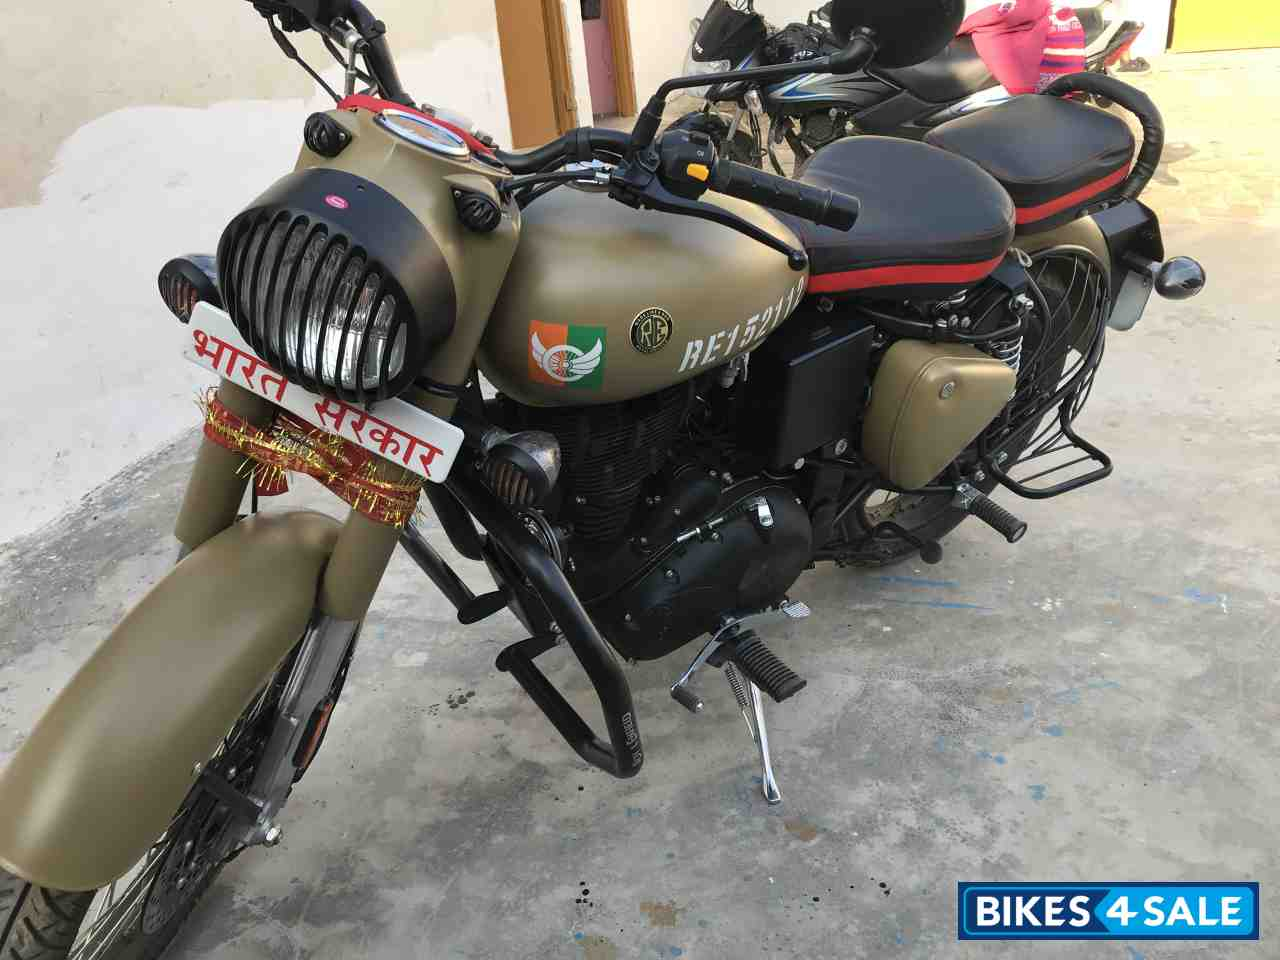 Used 2019 Model Royal Enfield Classic Signals Stormrider Sand For Sale In Lucknow Id 269870 Bikes4sale